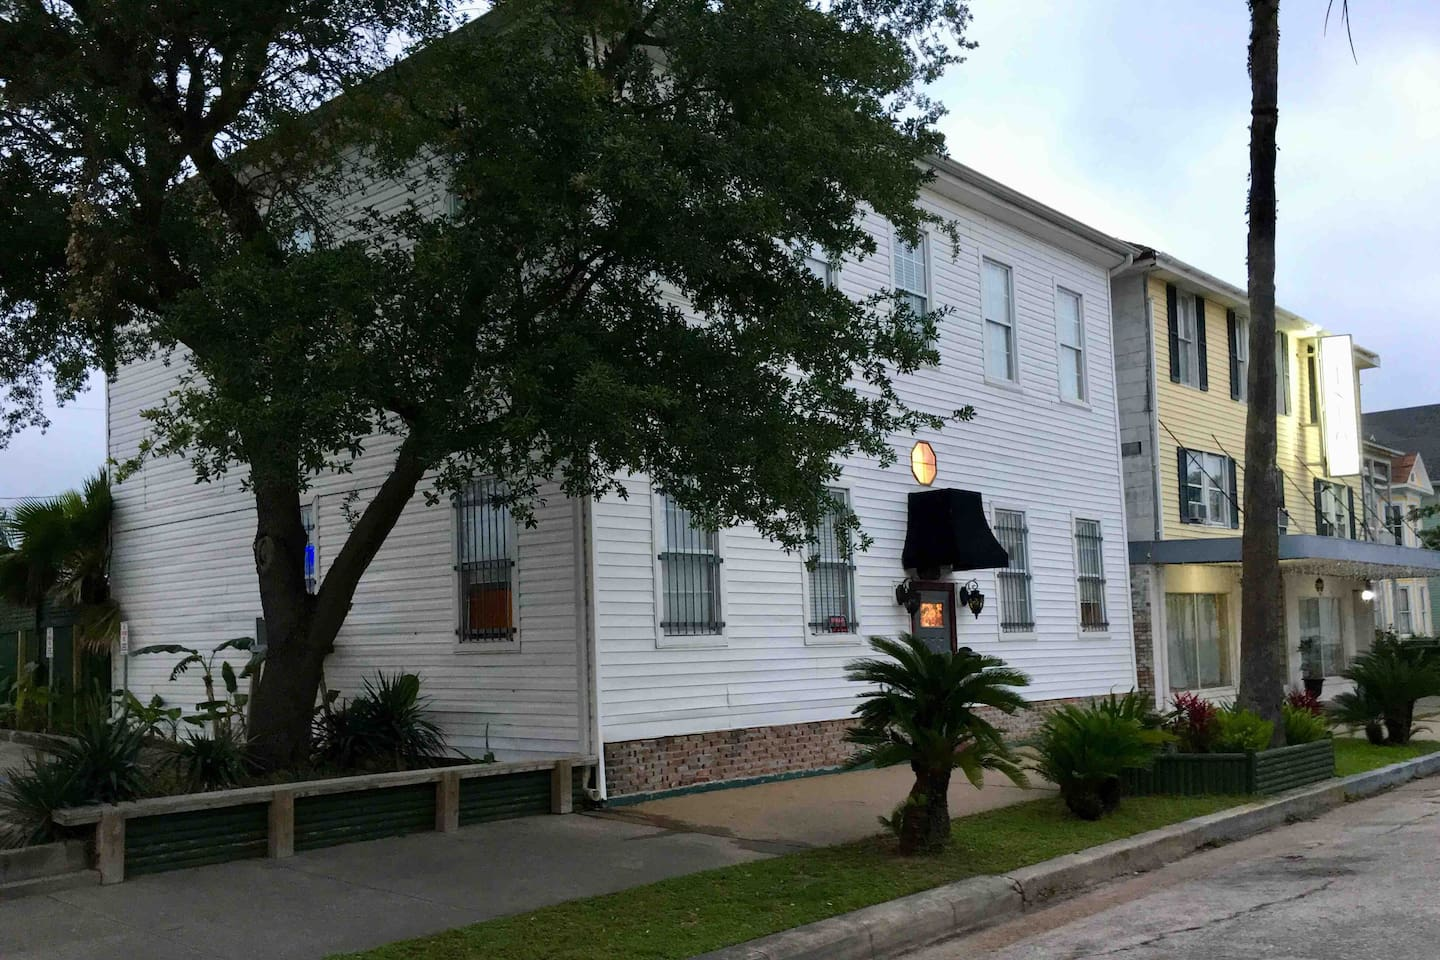 In the heart of downtown Galveston. This is the front of house view.